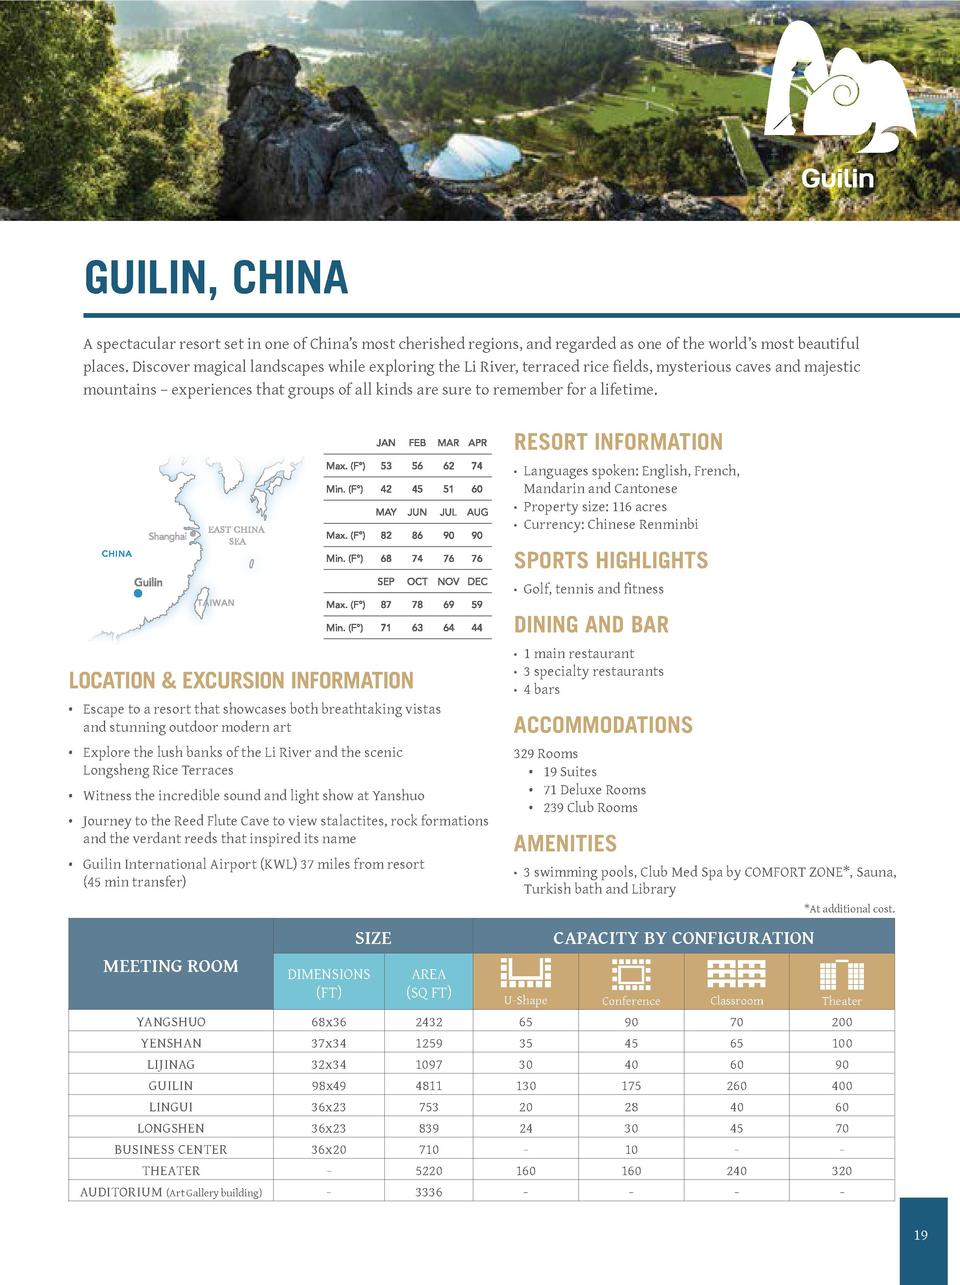 CLUB MED  PICTO GUILIN B  GUILIN, CHINA  N   dossier   201  Date   16 07 201  AD CD validatio  Client validation  A specta...